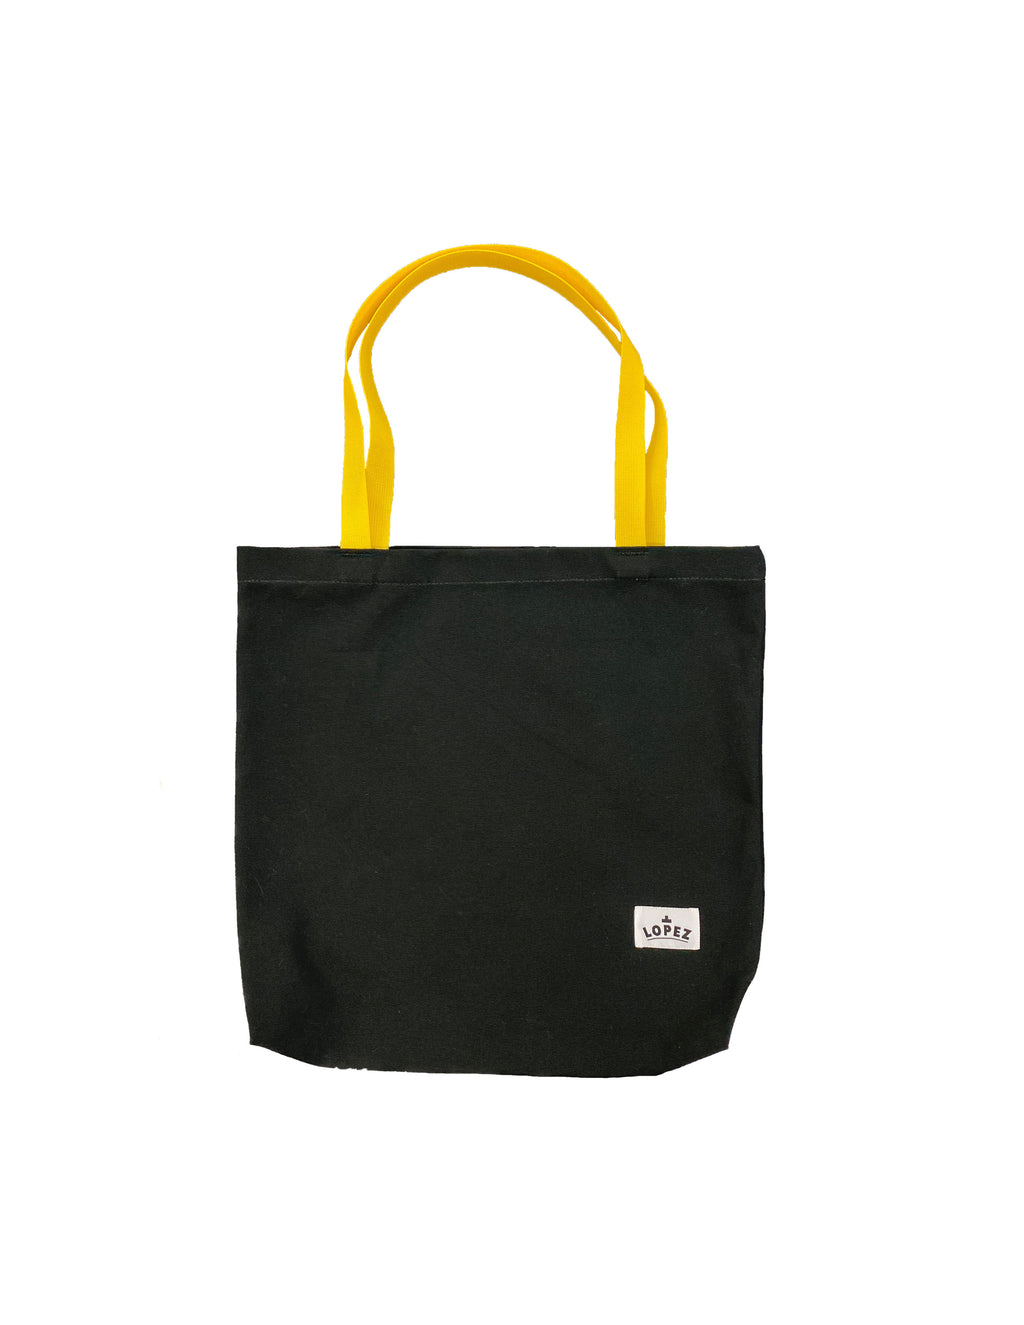 Shop Tote - Black